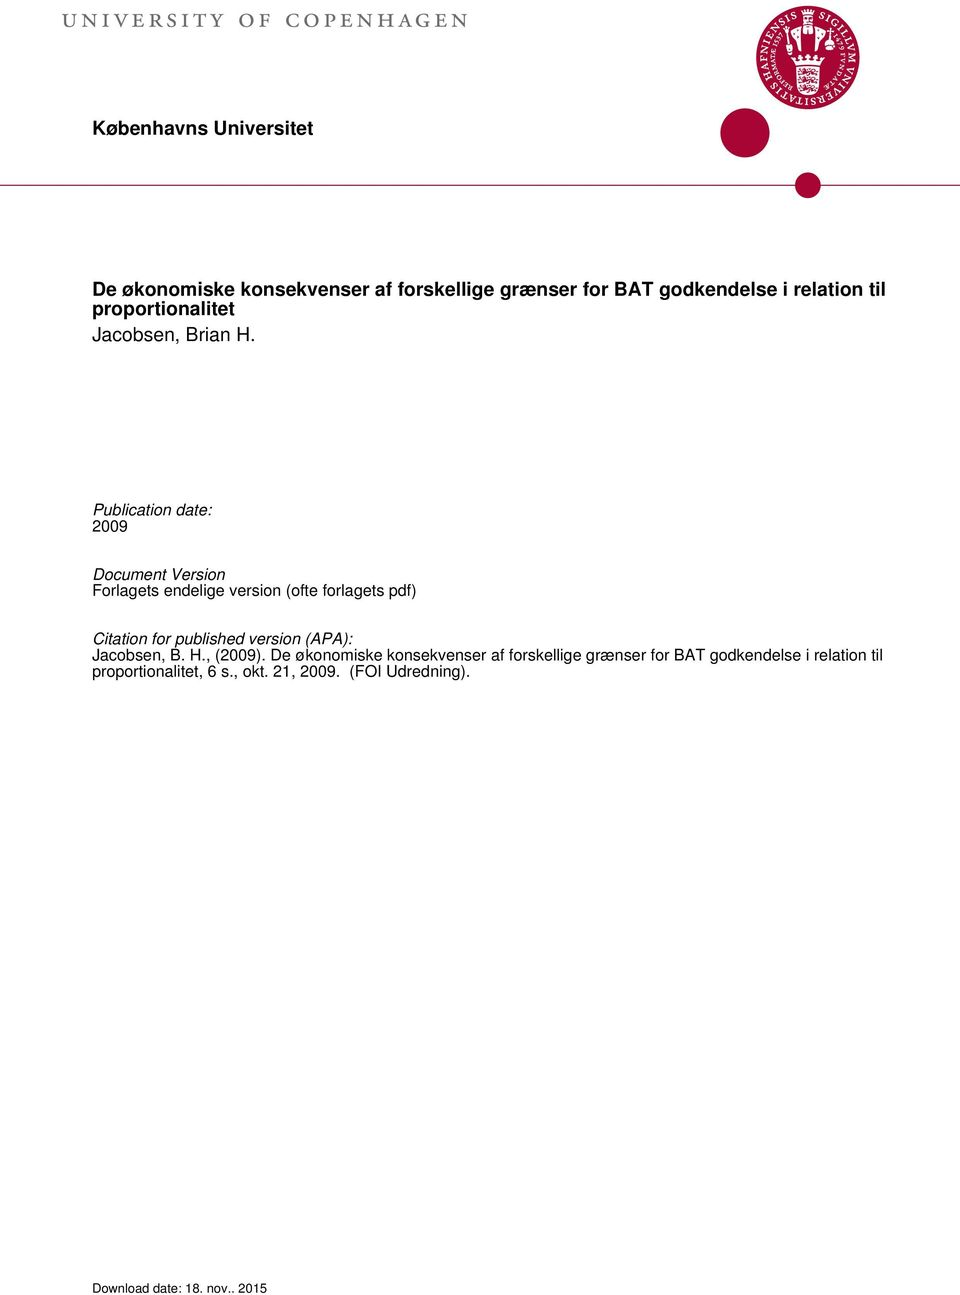 Publication date: 2009 Document Version Forlagets endelige version (ofte forlagets pdf) Citation for published version